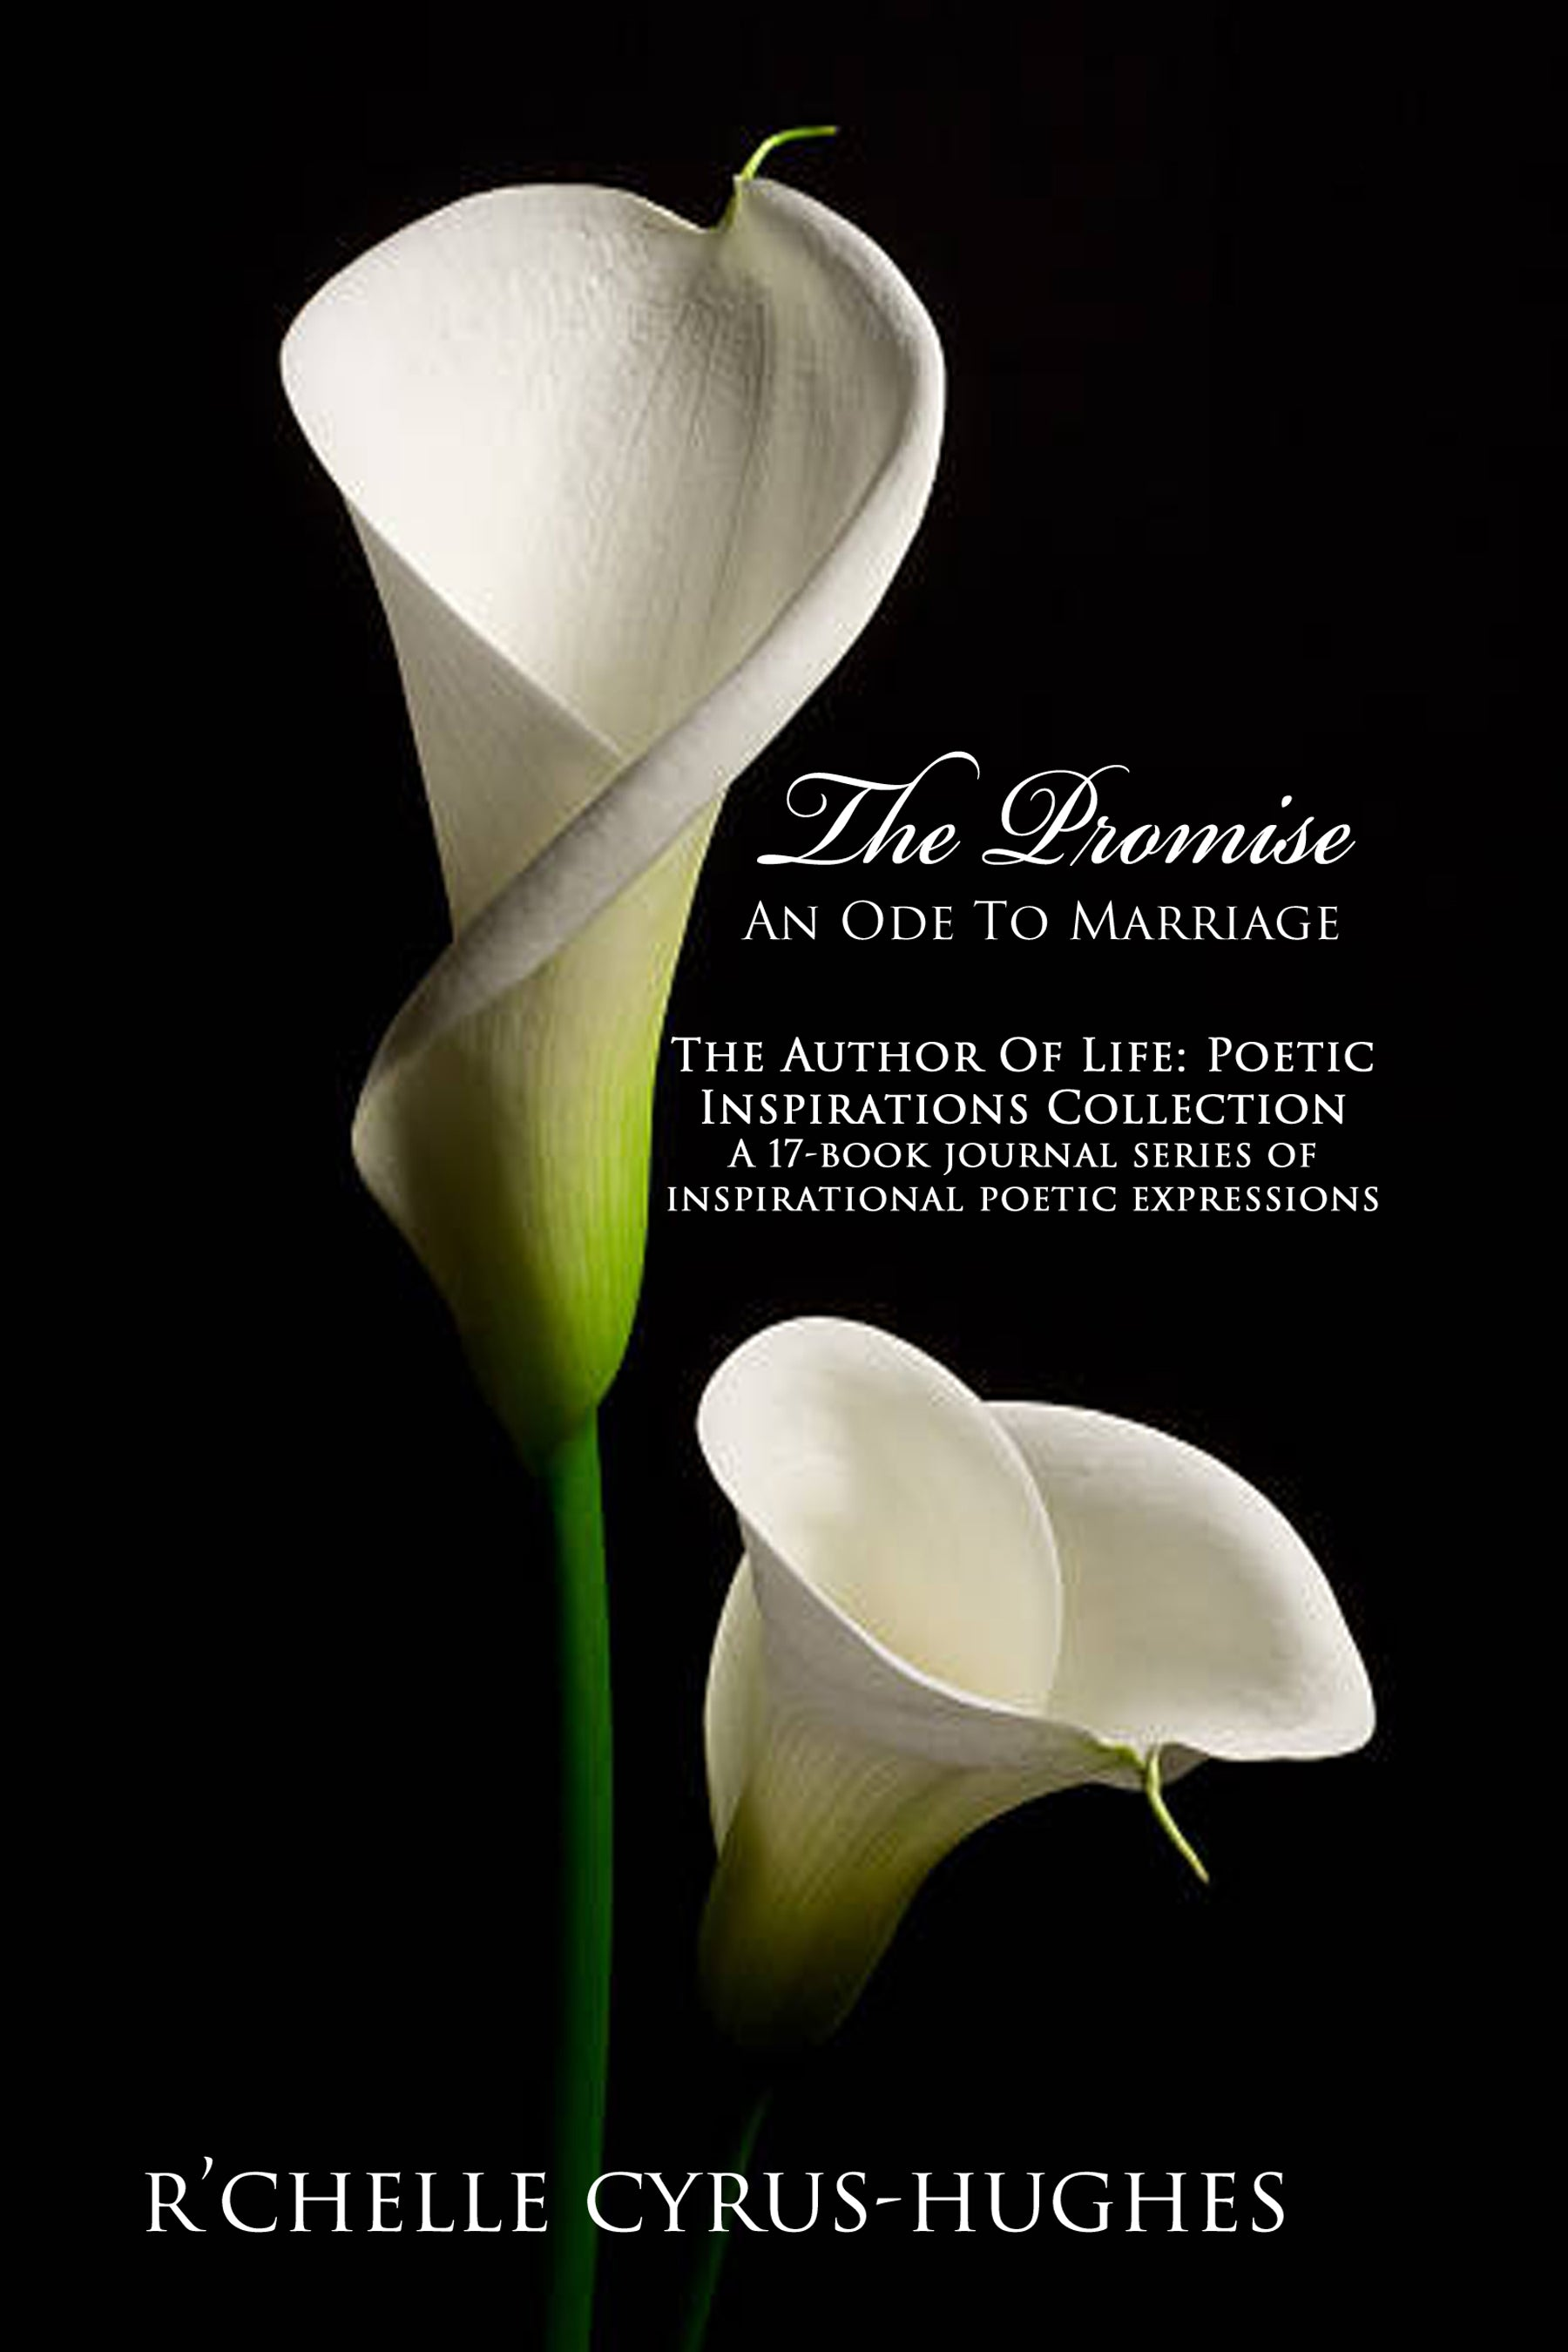 The Promise: An Ode To Marriage | Author Of Life: Poetic Inspirations Collection